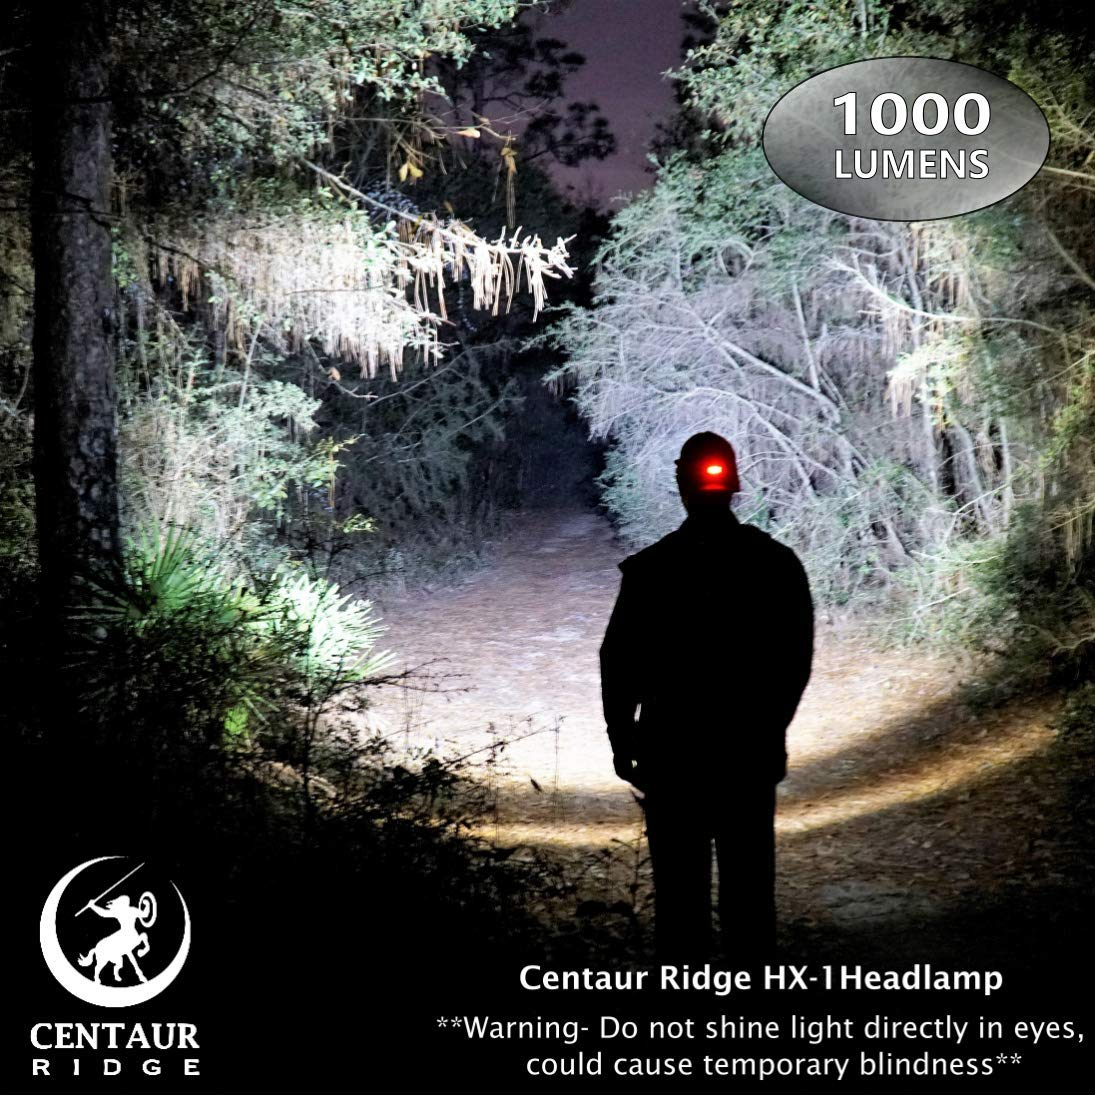 Centaur Ridge Headlamp - Xtreme Bright, 1000 Lumen CREE LED, Zoomable, USB Rechargeable | Best Flashlight for Camping, Hiking, Running, Work by Centaur Ridge (Image #7)